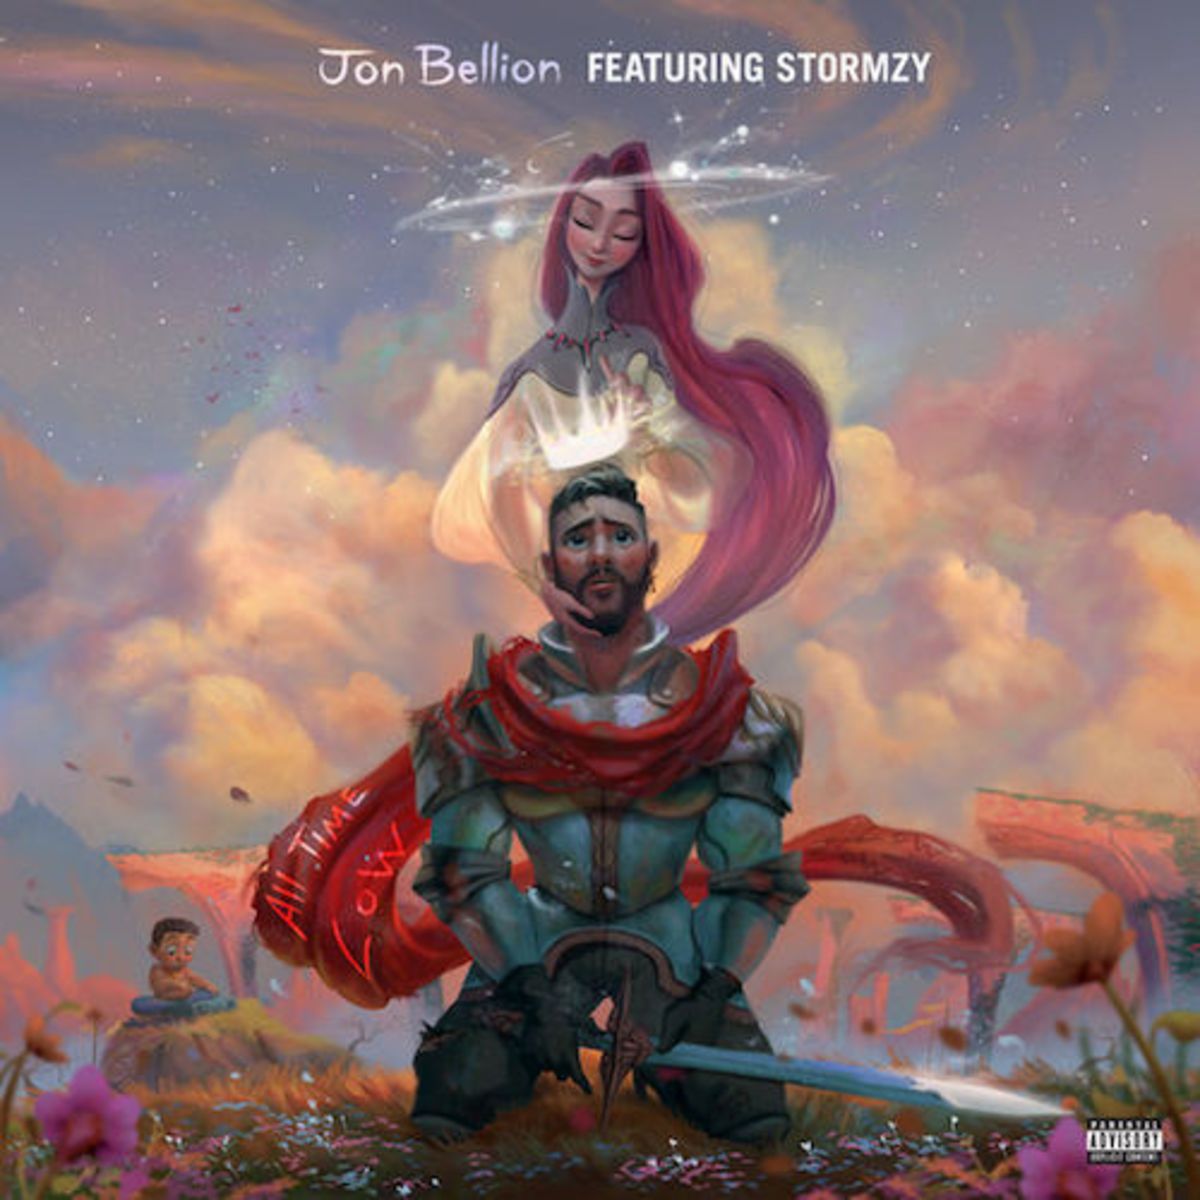 jon-bellion-all-time-low-remix.jpg